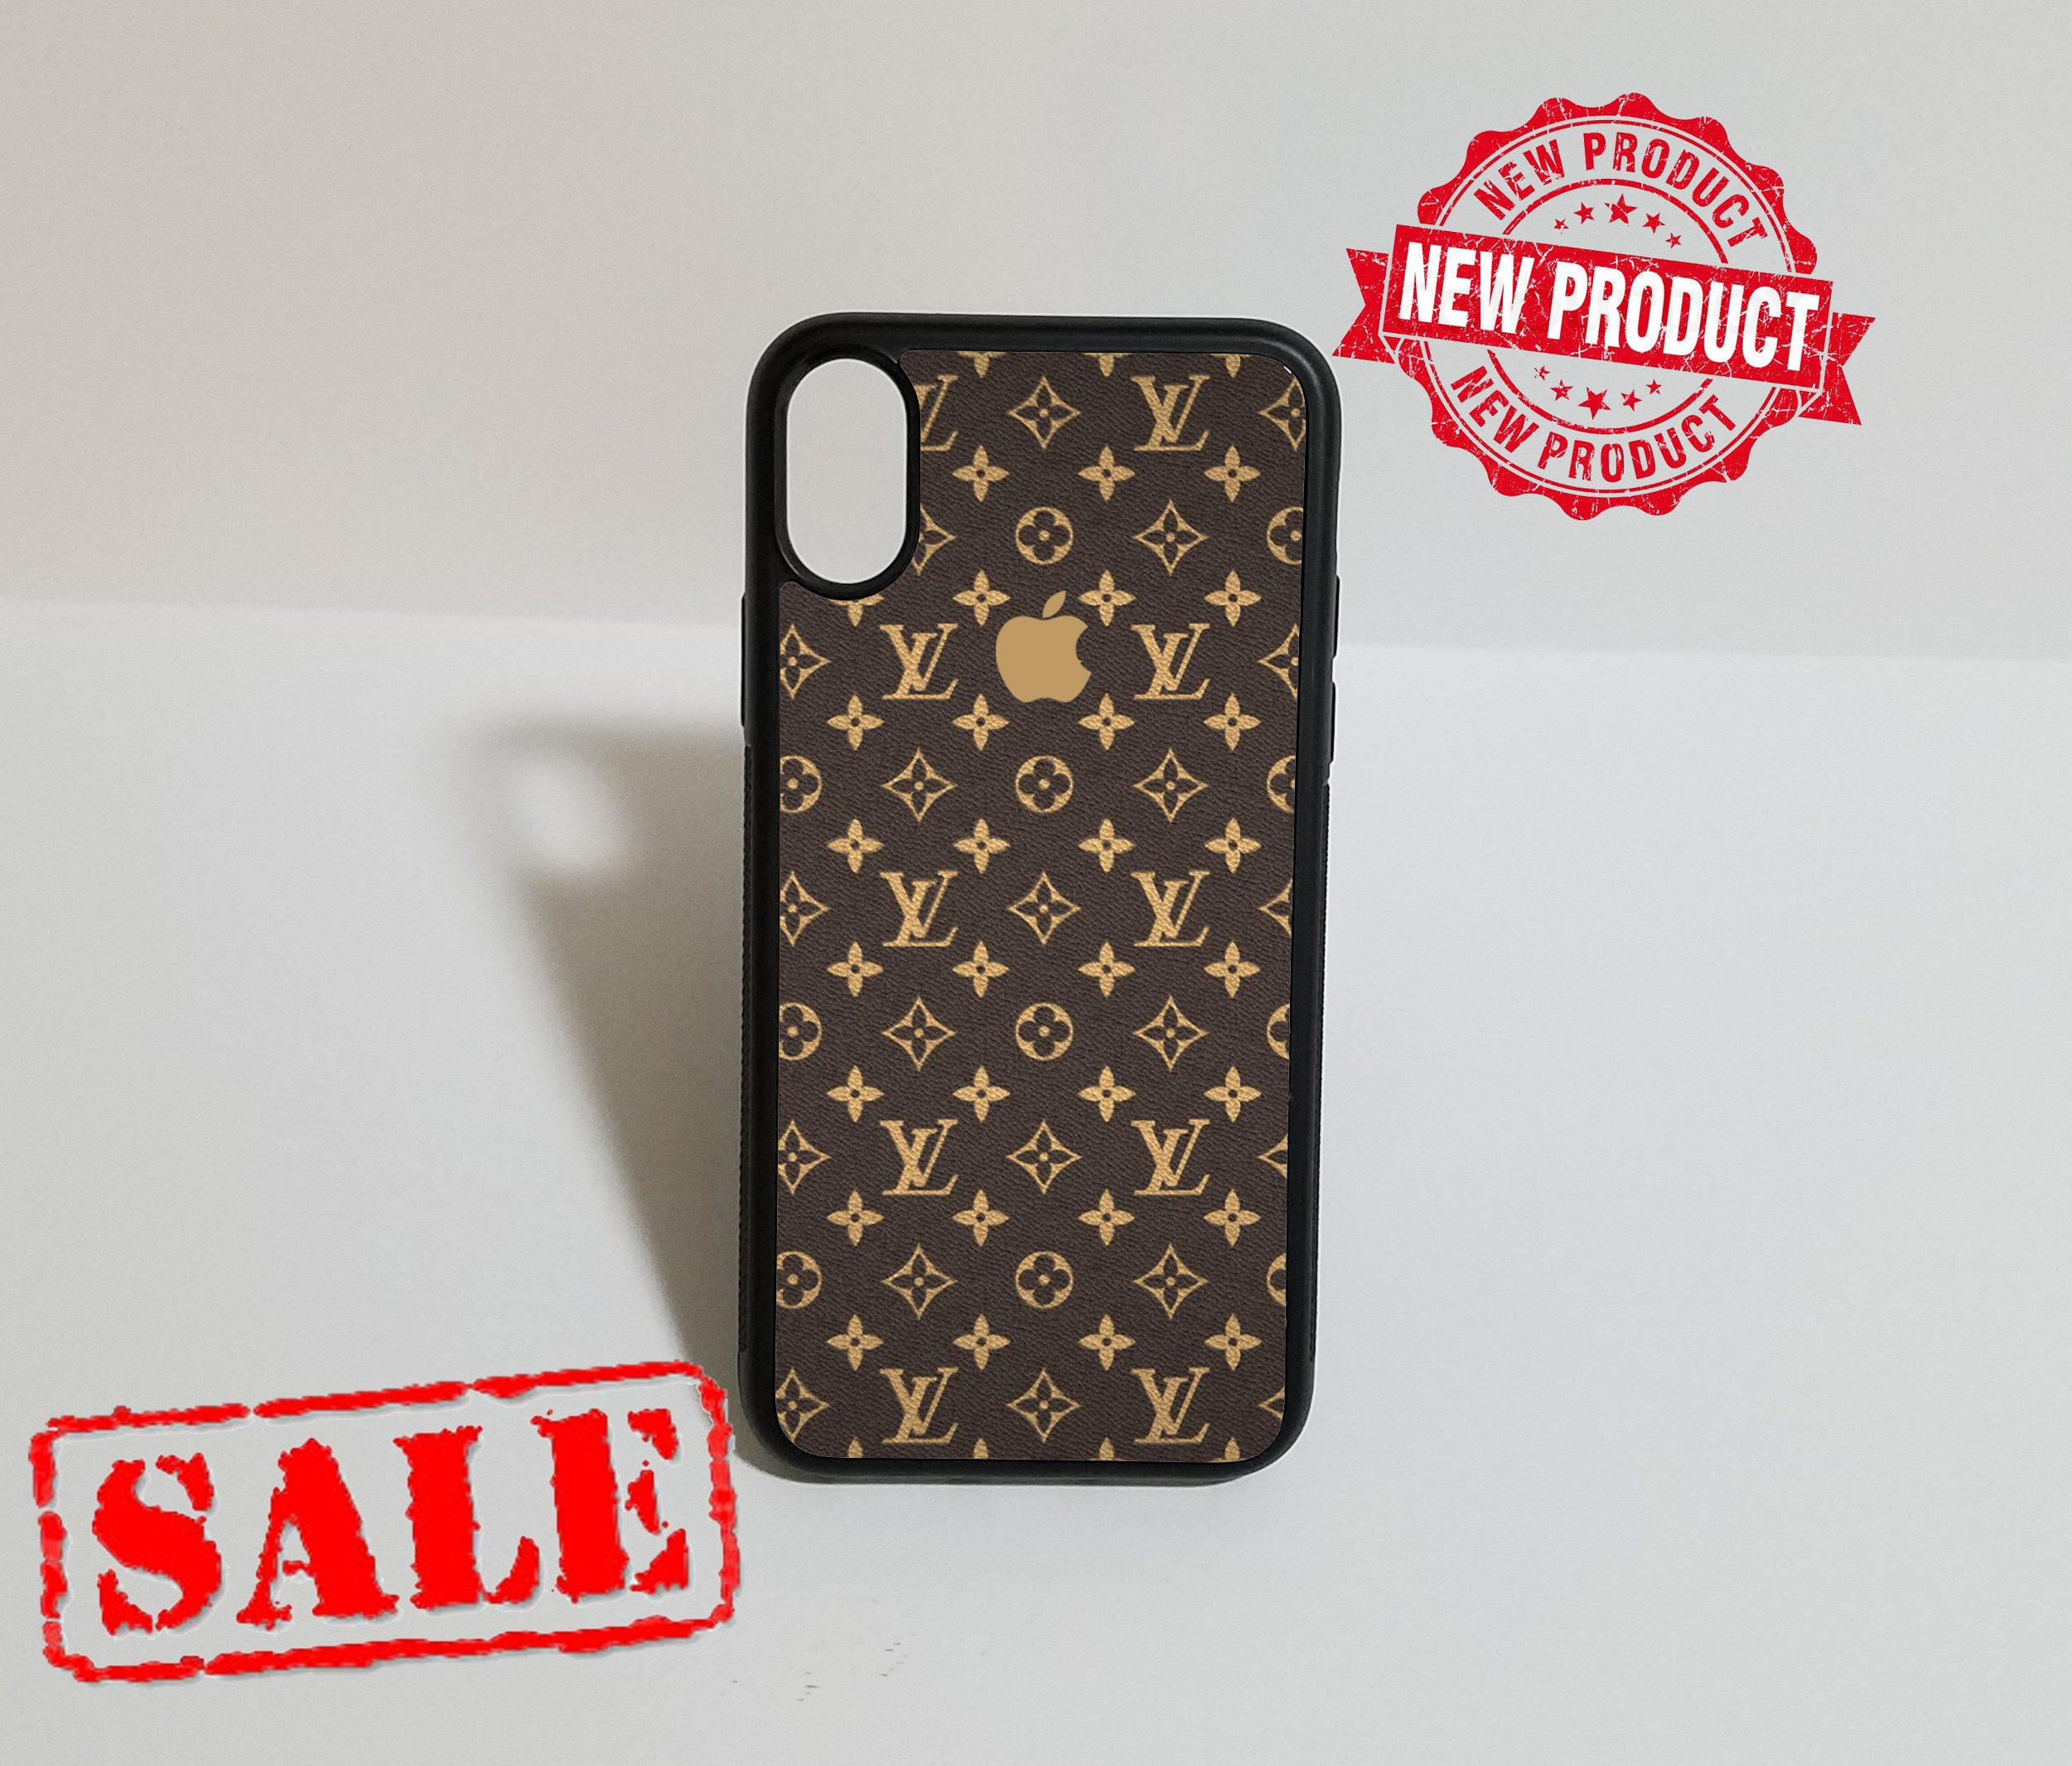 louis vuitton iphone x case iphone 10 case iphone 10 phone etsyCustom Iphone X Cover Make Your Own Iphone X Case Designer Cases For Iphone X Phone Cases For The Iphone 6 Designer Iphone 8 Wallet Louis Vuitton #8